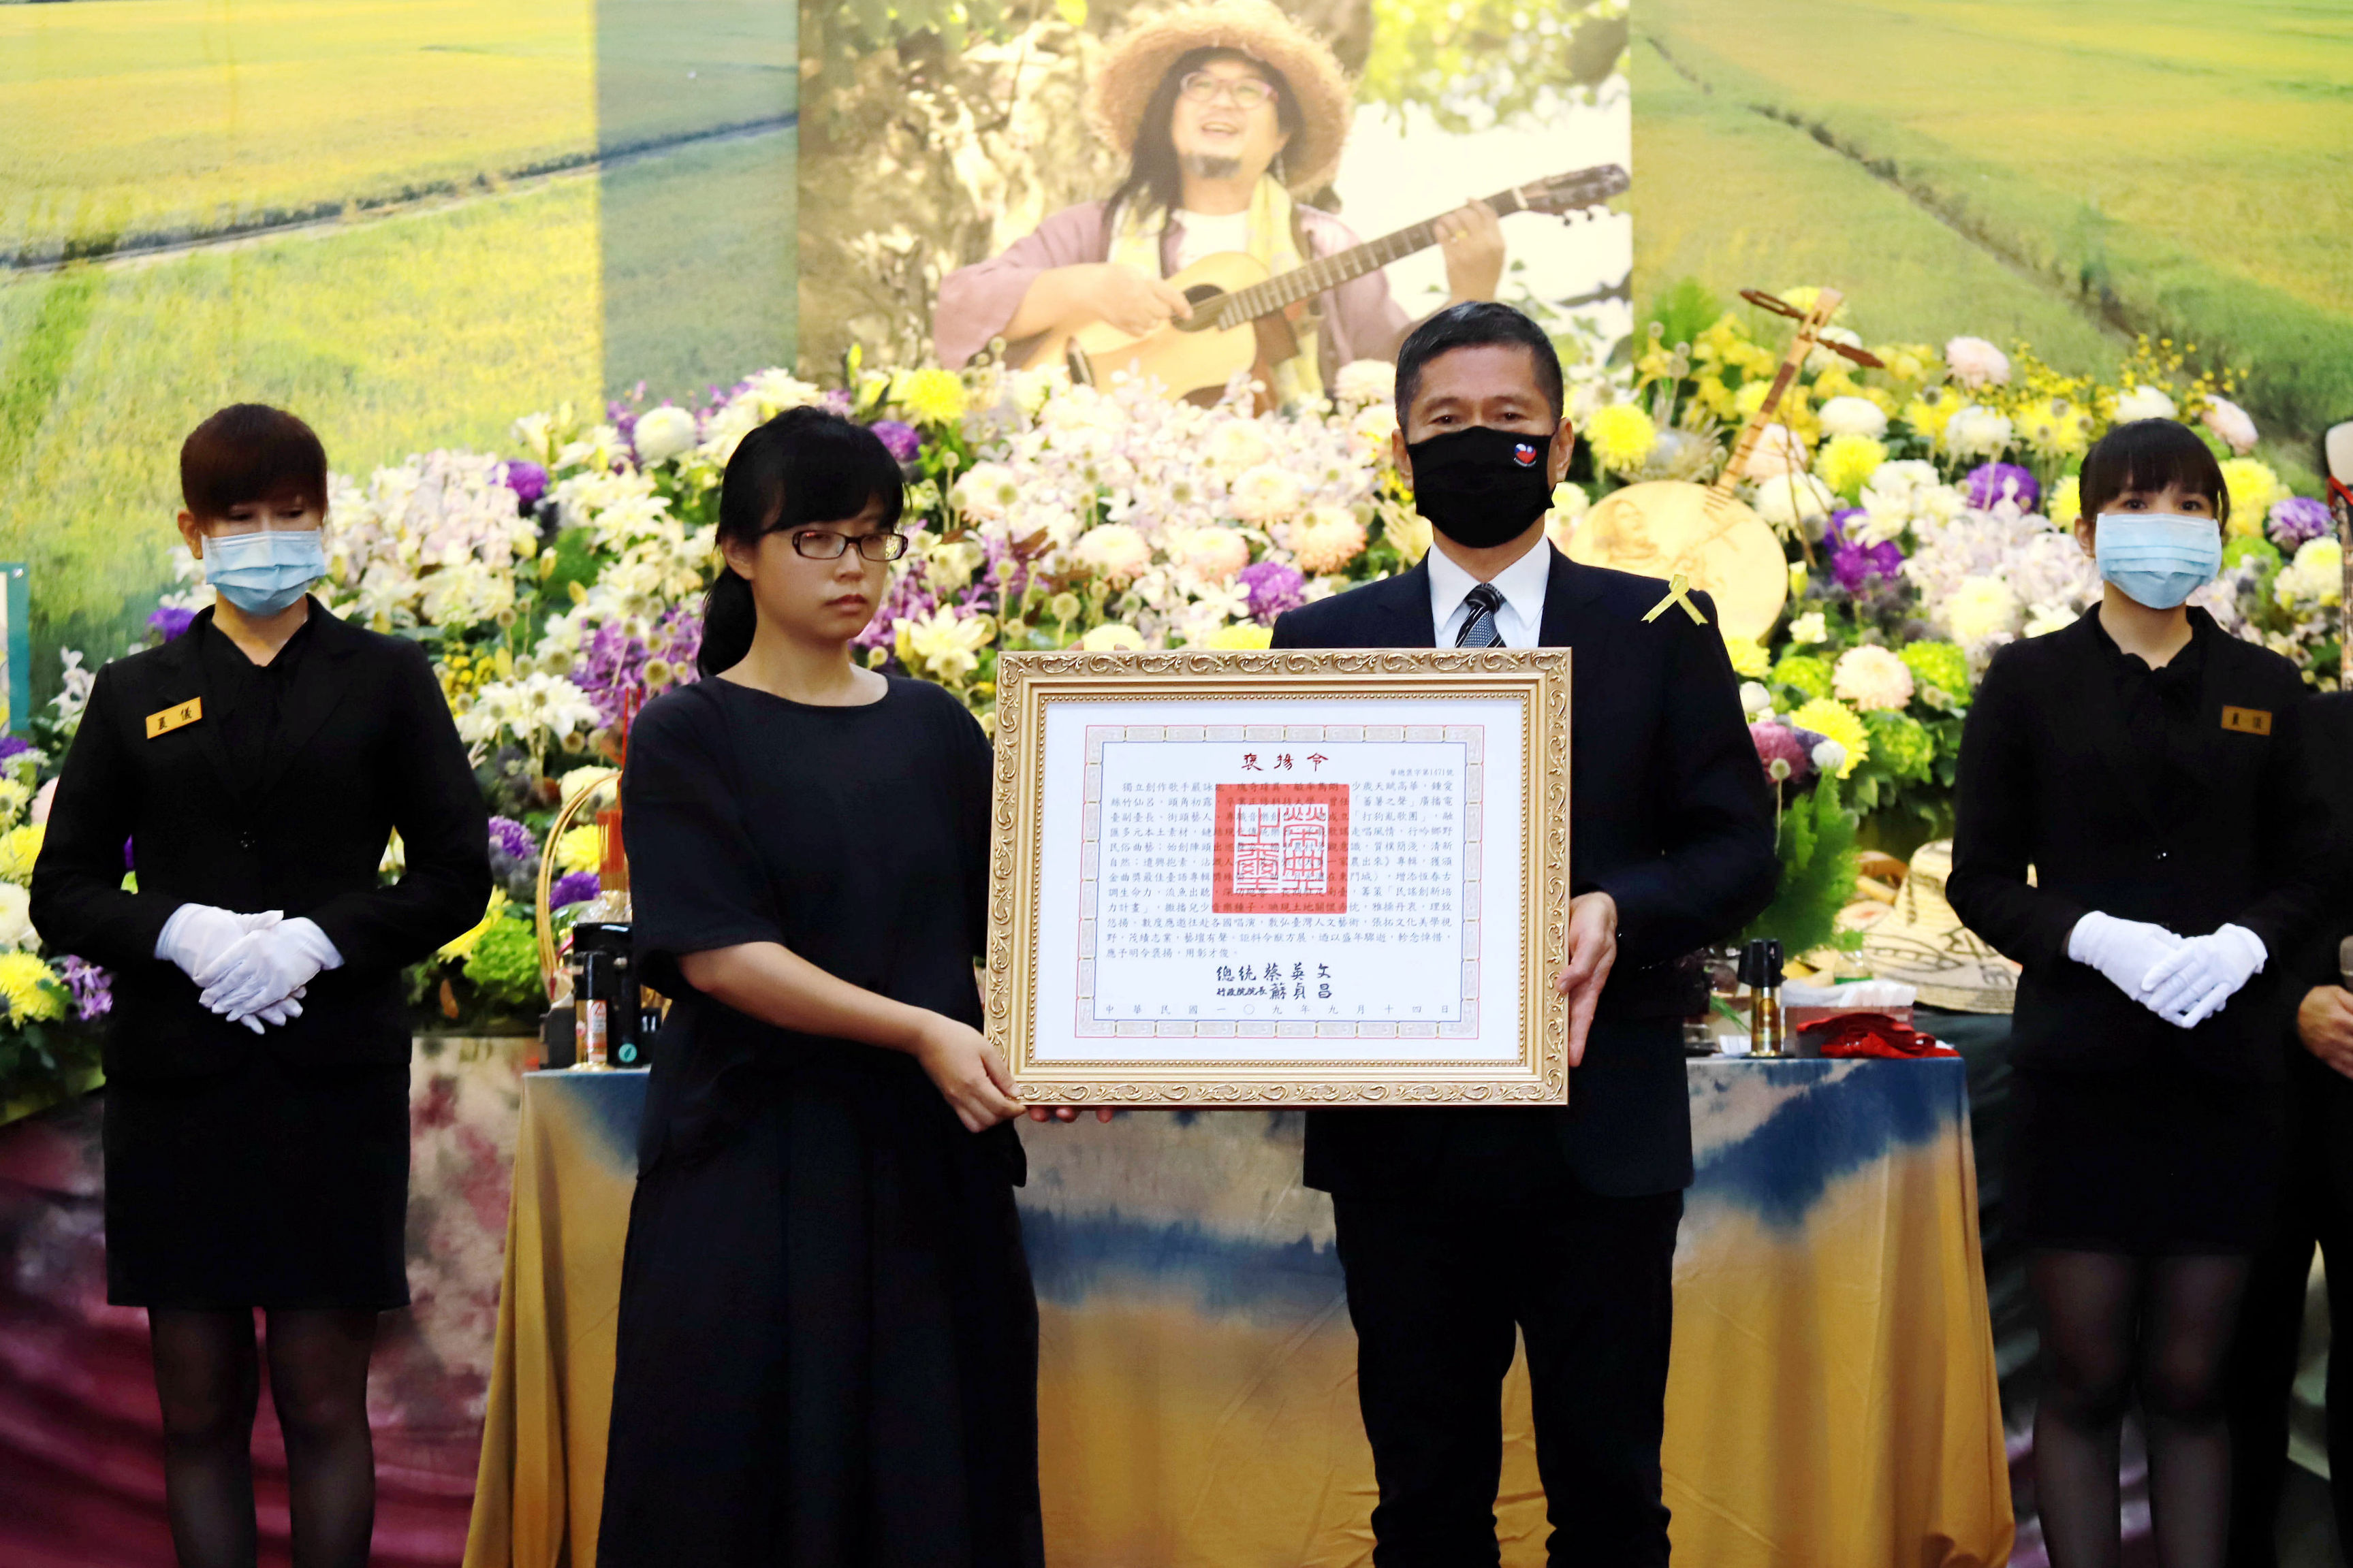 Independent musician Yen Yung-neng conferred posthumous honor by President